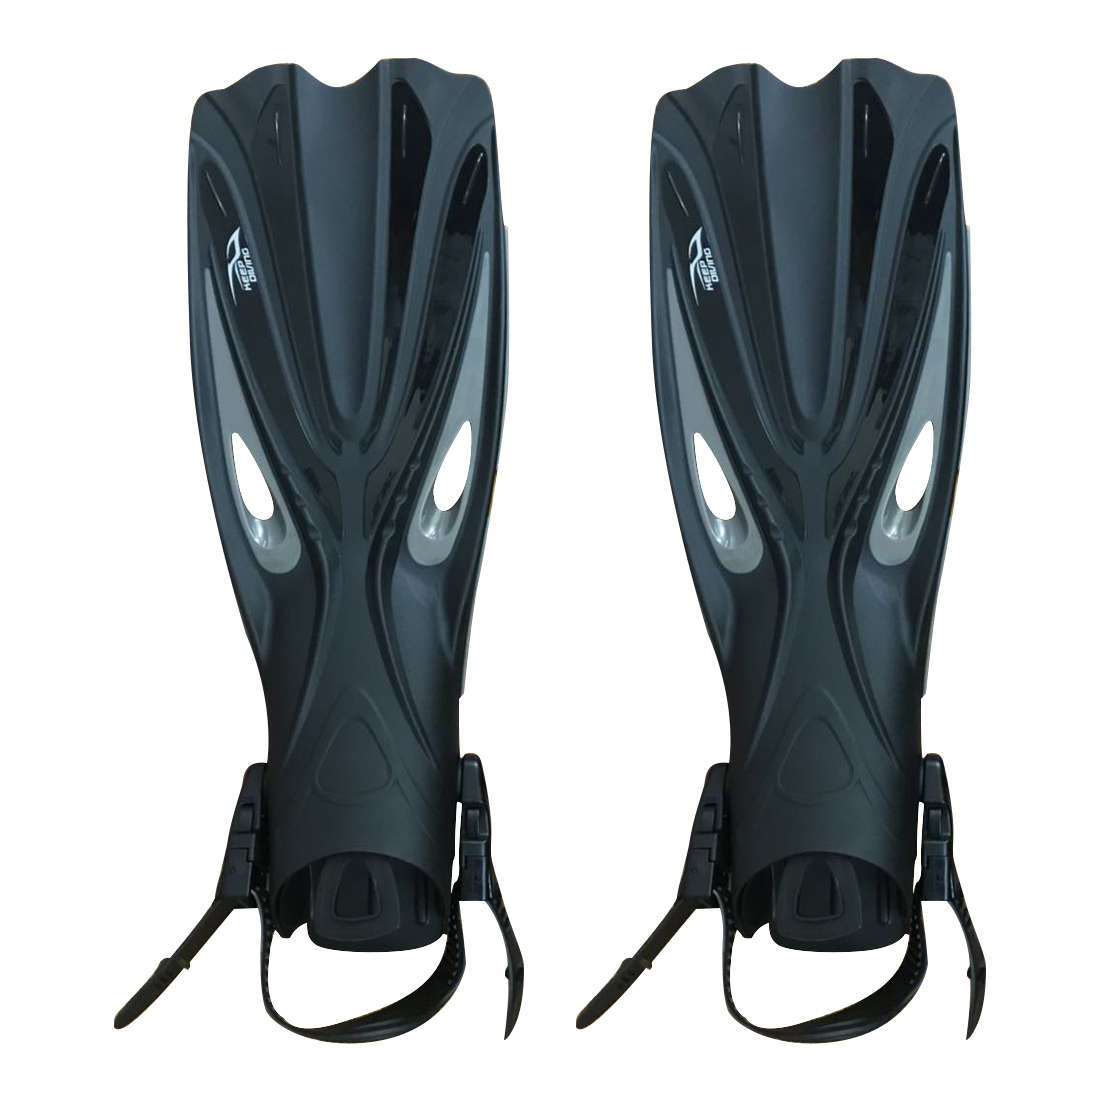 KEEP DIVING Open Heel Scuba Diving Long Fins Adjustable Snorkeling Swim Flippers Special For Diving Boots